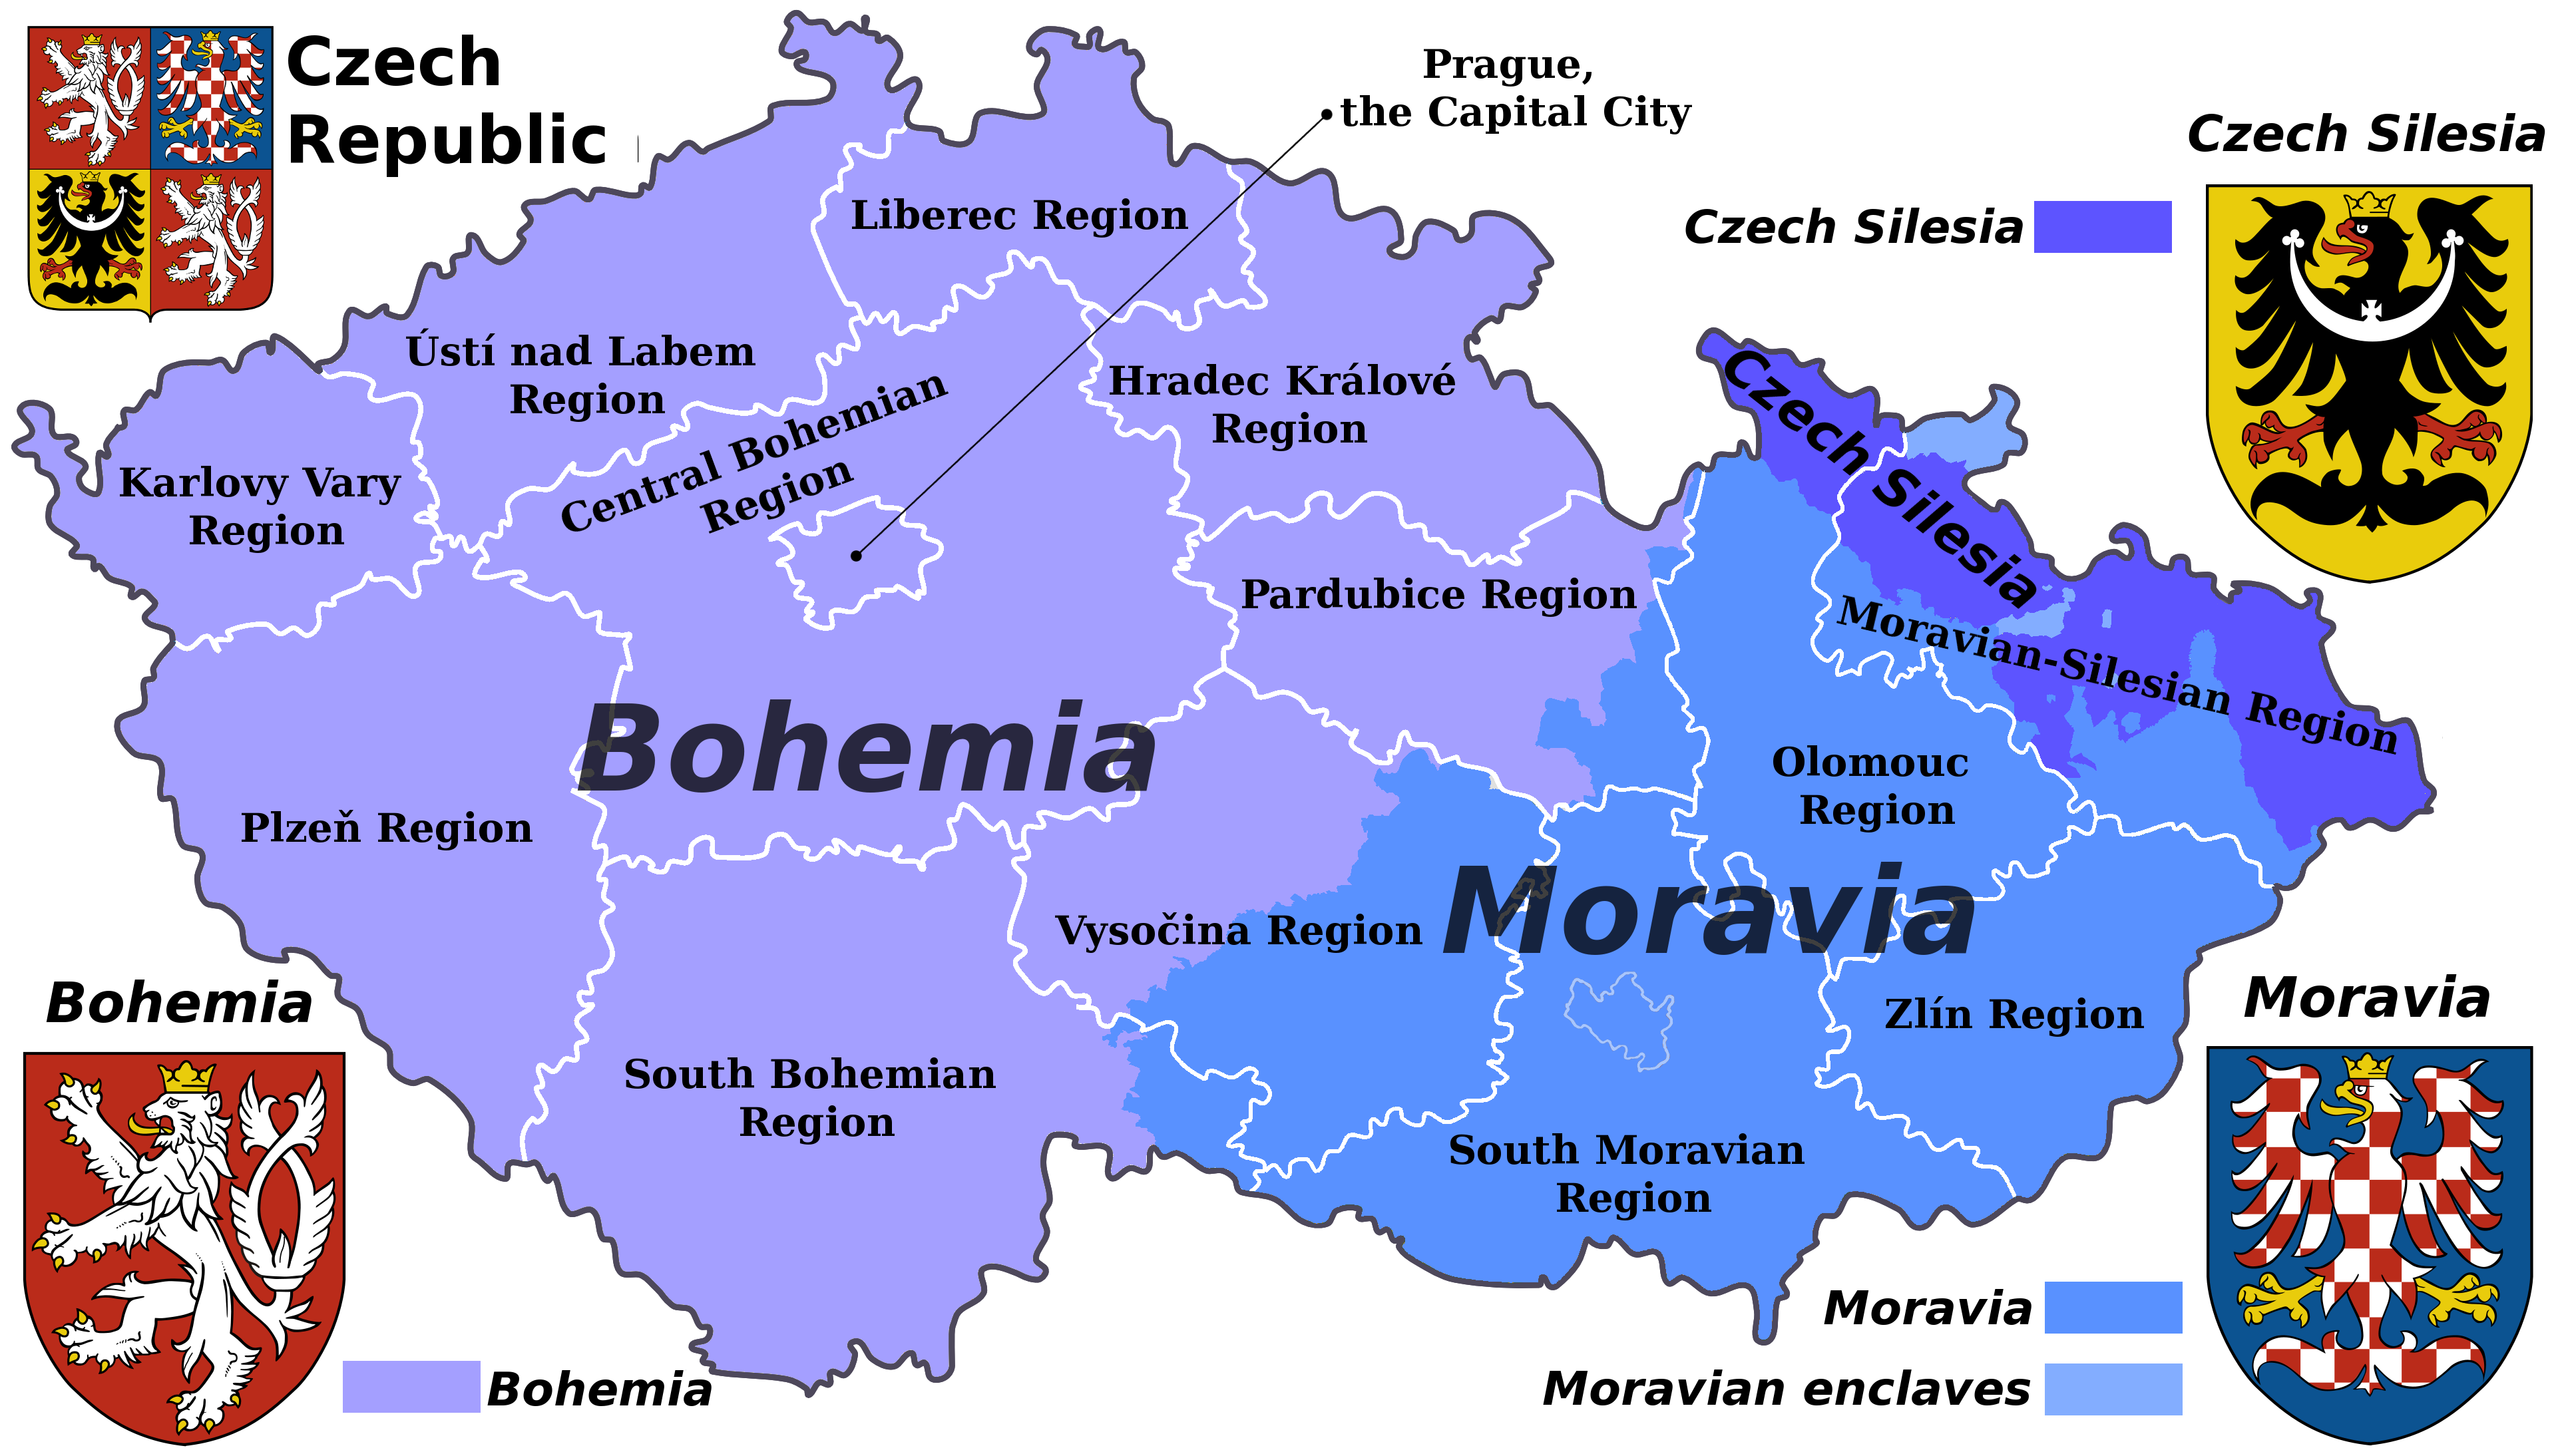 traditional regions and current administrative regions